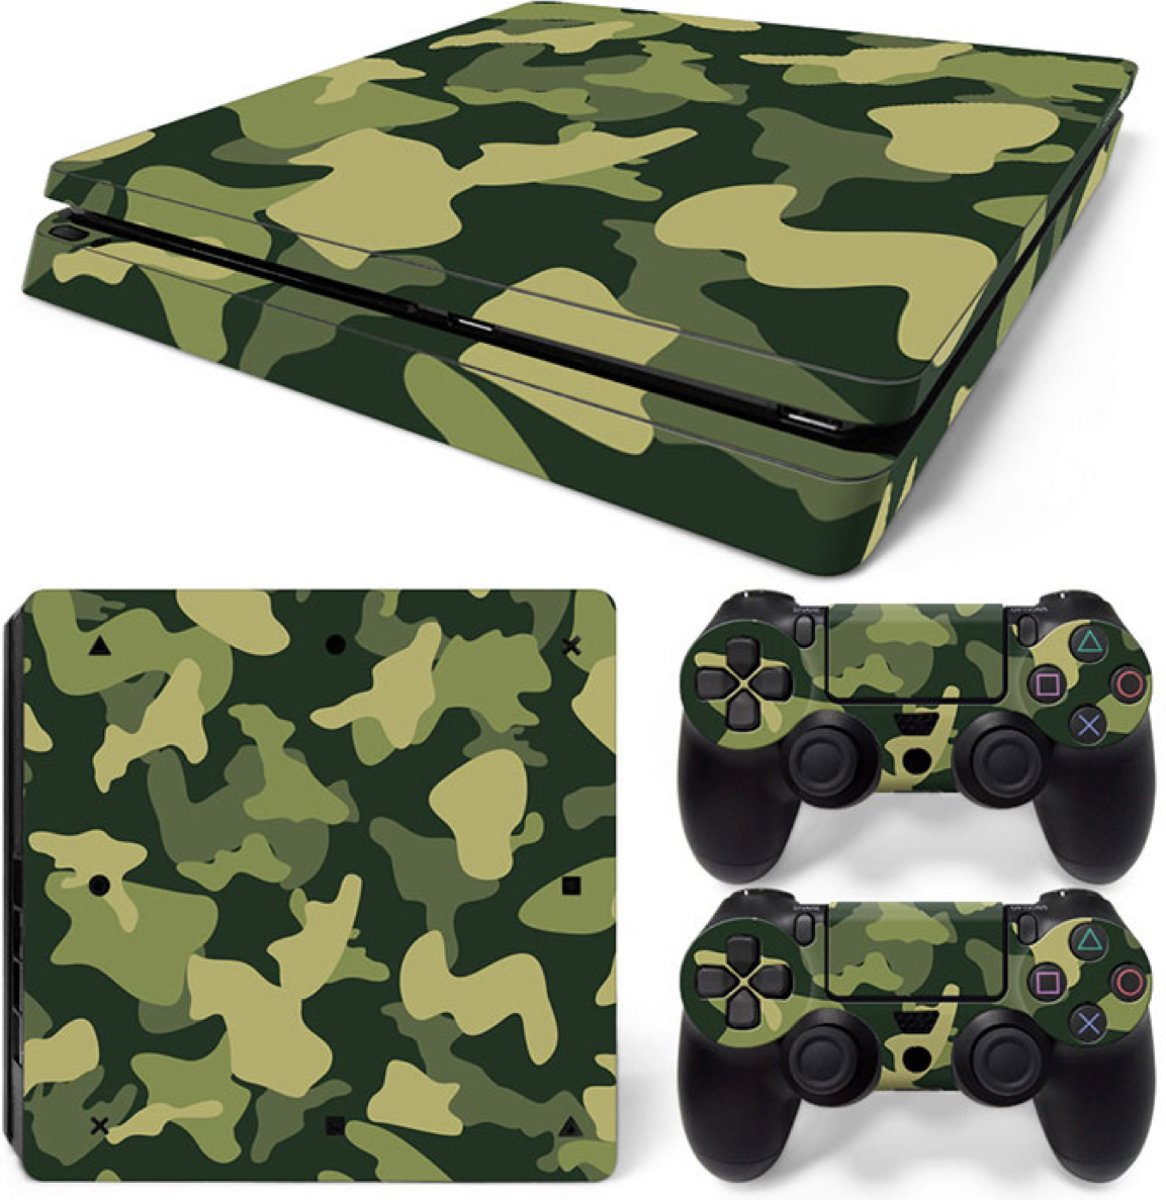 Army Camo / Groen Zwart - PS4 Slim Console Skins PlayStation Stickers